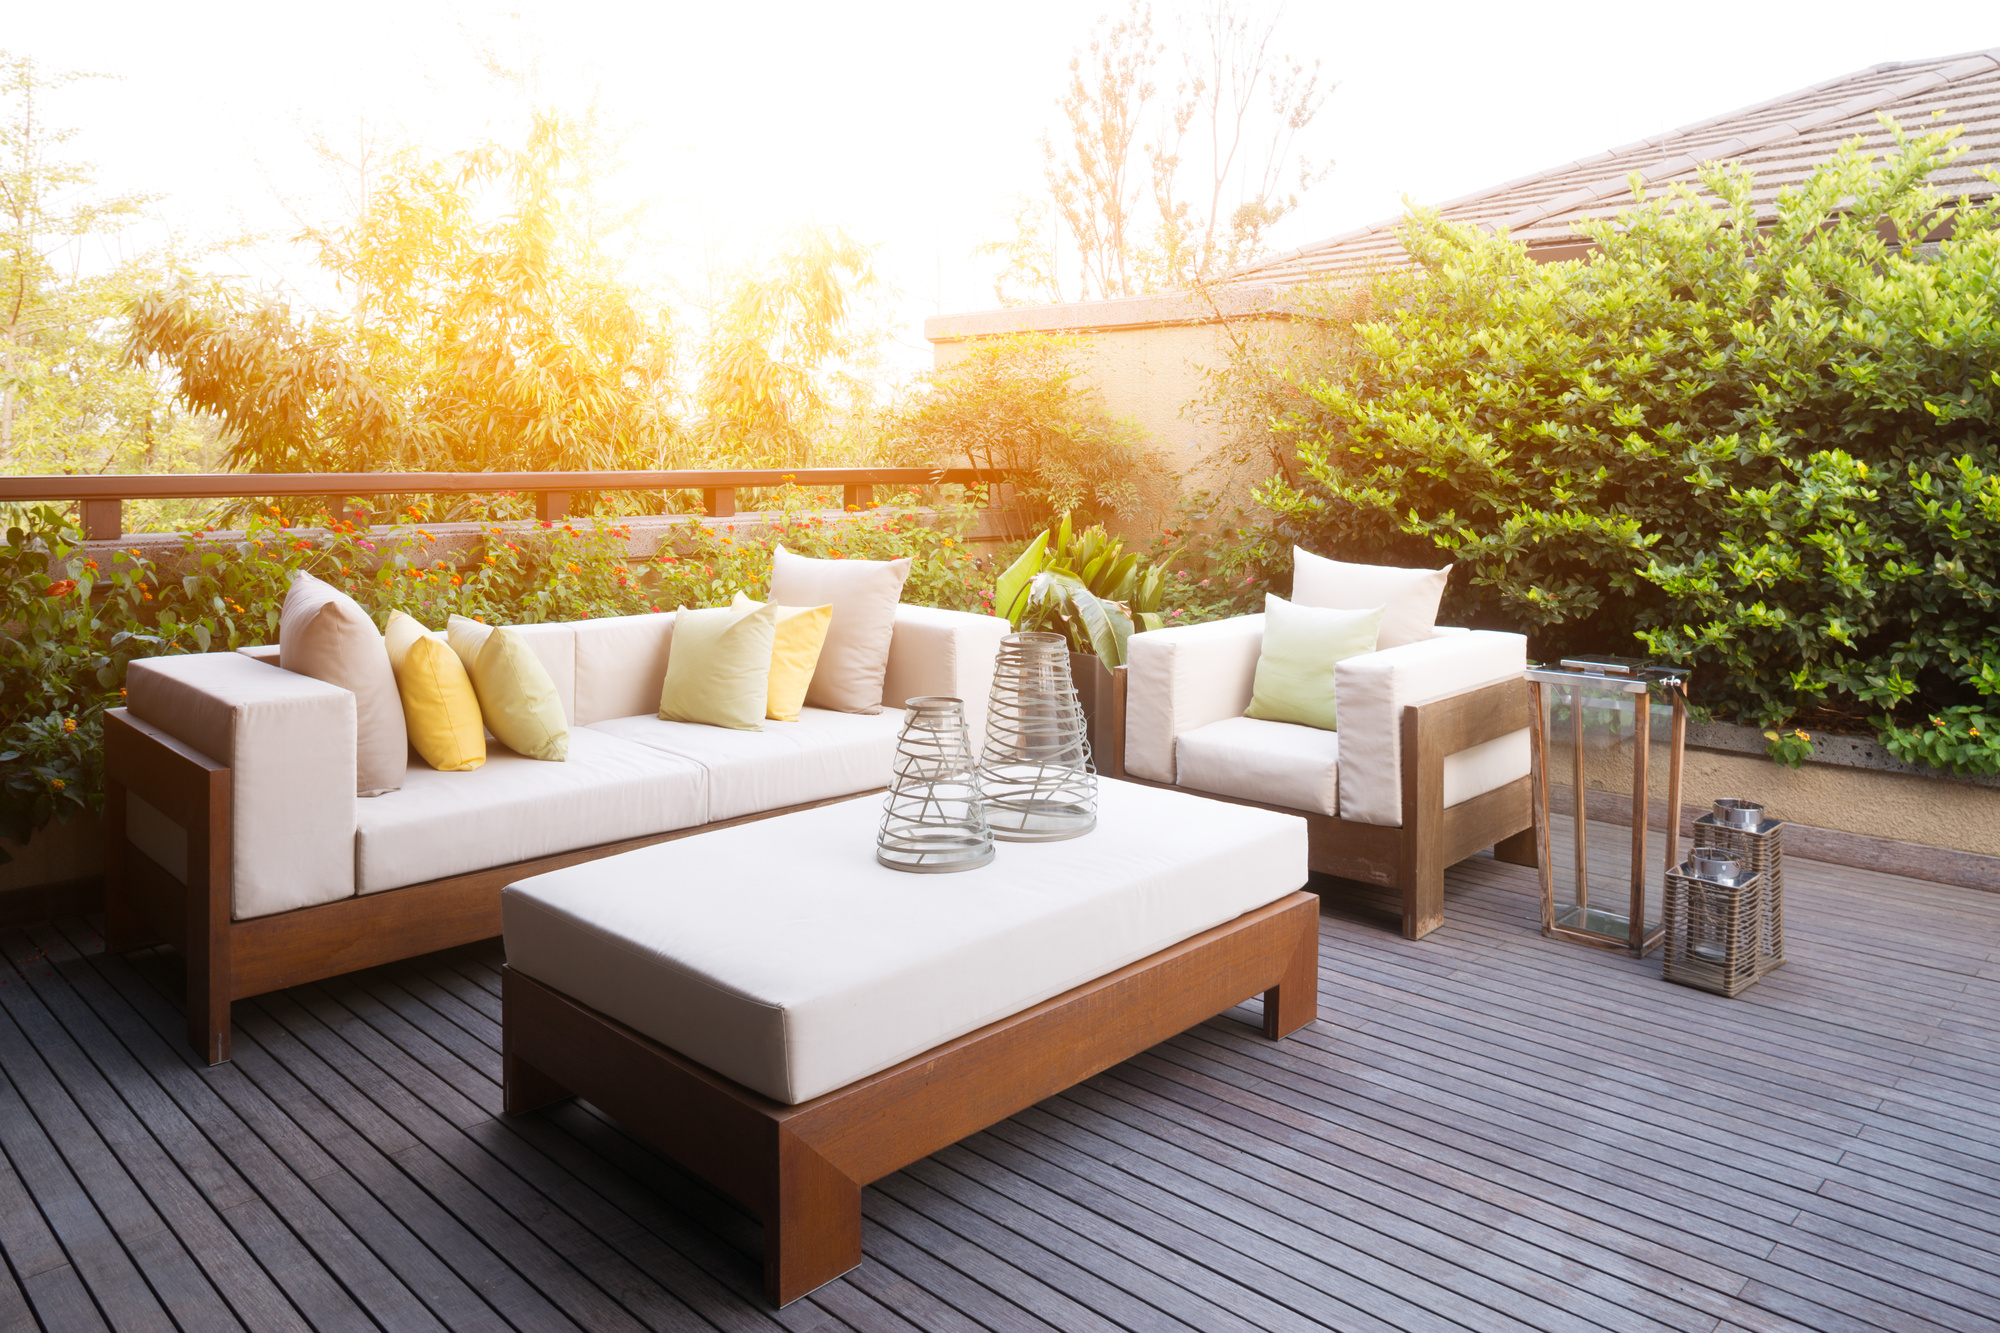 One home trend that isn't going away is the flow between indoor and outdoor living. Creating a space to relax and entertain out in the open air is the best way to add value to your home, both for resale pricing and your own enjoyment. With just a few changes, you can make your boring outdoor area feel like a personal oasis. You don't need to do a huge home makeover or total renovation to achieve this look. Here are ten ways your patio space can exceed expectations. 1. Fire Pit A firepit is one of the best investments you can make to transform your outdoor space into a place where everyone wants to gather. This easy addition to the patio will allow you to get so much more use from the outdoors. You'll want to toast marshmallows over the fire during summer evenings and cuddle up and get warm in the fall. A fire pit will extend the life of your patio by allowing you to extend the time you spend outside. 2. Outdoor Lighting The importance of lighting is often overlooked when thinking about an outdoor space. Truth is, you shouldn't just add a few bulbs or lanterns in the ground and call it a day. Rather, you should think through a complete lighting design to finish the space. Make sure you're lighting your area sufficiently so you can see across the patio. Be sure to especially light areas where you would gather, like seating and dining spaces. Consider using string lights, lanterns, and solar lamps to light up your patio. 3. Privacy Screen If you want to give your outdoor space a feeling like you're in a personal oasis, then a privacy screen is a must. Privacy screens are ideal for urban life where your neighbor's yard may be close to yours, but they'll fit well into a suburban backyard as well. These outdoor screens will help give your space a feeling of seclusion, which will be great if you're entertaining friends or want to relax outside on your own. It can go a long way to transform your space into your private paradise. 4. Area Rug Perhaps not your first thought for your outdoor area, but an area rug is a great addition nonetheless. An area rug can add an element of coziness to your outdoor space, making it feel warm and relaxing. It can also add a pop of color and pattern to your outdoor design. Choose an all-weather rug and made for patios so that it stands up to the outdoor elements. And try to stay away from a rug with a thick pile height. 5. Outdoor Fans When the weather is hot and muggy, the last thing most people want to do is spend time outside. But the heat of the summer is the best time to enjoy your patio. So what is the solution? An outdoor ceiling fan, of course. If you have a covered patio area, outdoor fans will help circulate air and cool the space down. Add this to your patio, and you can enjoy hanging out outside even on the hottest of days.  6. Pillows and Blankets Want to make your outdoor area feel cozy in one step? Add pillows and blanket. This simple action can transform your space into a warm and inviting area to spend your time. No matter what patio furniture you're on, sinking back into pillows gives an instant feeling of comfort. And blankets are ideal no matter what season; chilly summer evenings or fall nights when the cold starts to set in. 7. Conversation Area It doesn't matter what your entertainer level is; a conversation area in your backyard is a must. You may like hosting huge parties or just having a few family and friends over, but either way, you'll need a place for them to sit. Create a conversation area by arranging patio couches, loveseats, and armchairs in a circular configuration. This allows everyone to see each other and be involved in the conversation. You can also accent the conversation area with poufs and floor pillows. 8. Pergola Patio A pergola is a great addition to your patio as it can give definition to a seating or dining area. The wooden slats allow for some sunlight to shine through, so you'll be able to feel the warmth but not get overheated. It's a great update that will help give the effect of a permanent room without having to build an addition. You can add climbing plants or curtains to decorate and add personality. 9. Day Bed Love the idea of falling asleep under the wide-open sky but don't have a comfortable place to do so? That's where a day bed will come in handy. Add an outdoor daybed to your backyard space so you can lay back and relax, watching the sky pass overhead. Choose lightweight and breathable materials so you can lay in the sun without overheating. Add soft pillows and thin blankets for comfort. Sheer curtains overhead and around the side can keep out both the sun and bugs. 10. Dining Space Who doesn't love the idea of dining al fresco? Bring the refreshing feeling of dining out in the open air to your home by creating a dedicated dining space in your backyard. You can set out a table either on a concrete patio or out in the grass. A large table that can seat eight to twelve people is great for entertainers. But if you're just looking to host a few family or friends, a table of six will do just as well. Finish the dining space with its own lighting and a stunning tablescape. An Outdoor Space That Will Exceed Expectations Whether you're an evening relaxer or an outdoor entertainer, having an outdoor space that will exceed expectations is a must for any homeowner. It doesn't have to take a huge renovation or remodel of your deck and patio to achieve this backyard oasis. A few small changes can make your patio feel like an extension of your living space. You can get cozy with the family or sit and chat with friends, all while enjoying the open air. With these tips, it's easy to create an outdoor space you'll never want to leave. Feeling inspired to transform your space? Share this with a friend you'd like to relax with in an outdoor oasis. Then, check out more home and lifestyle articles.